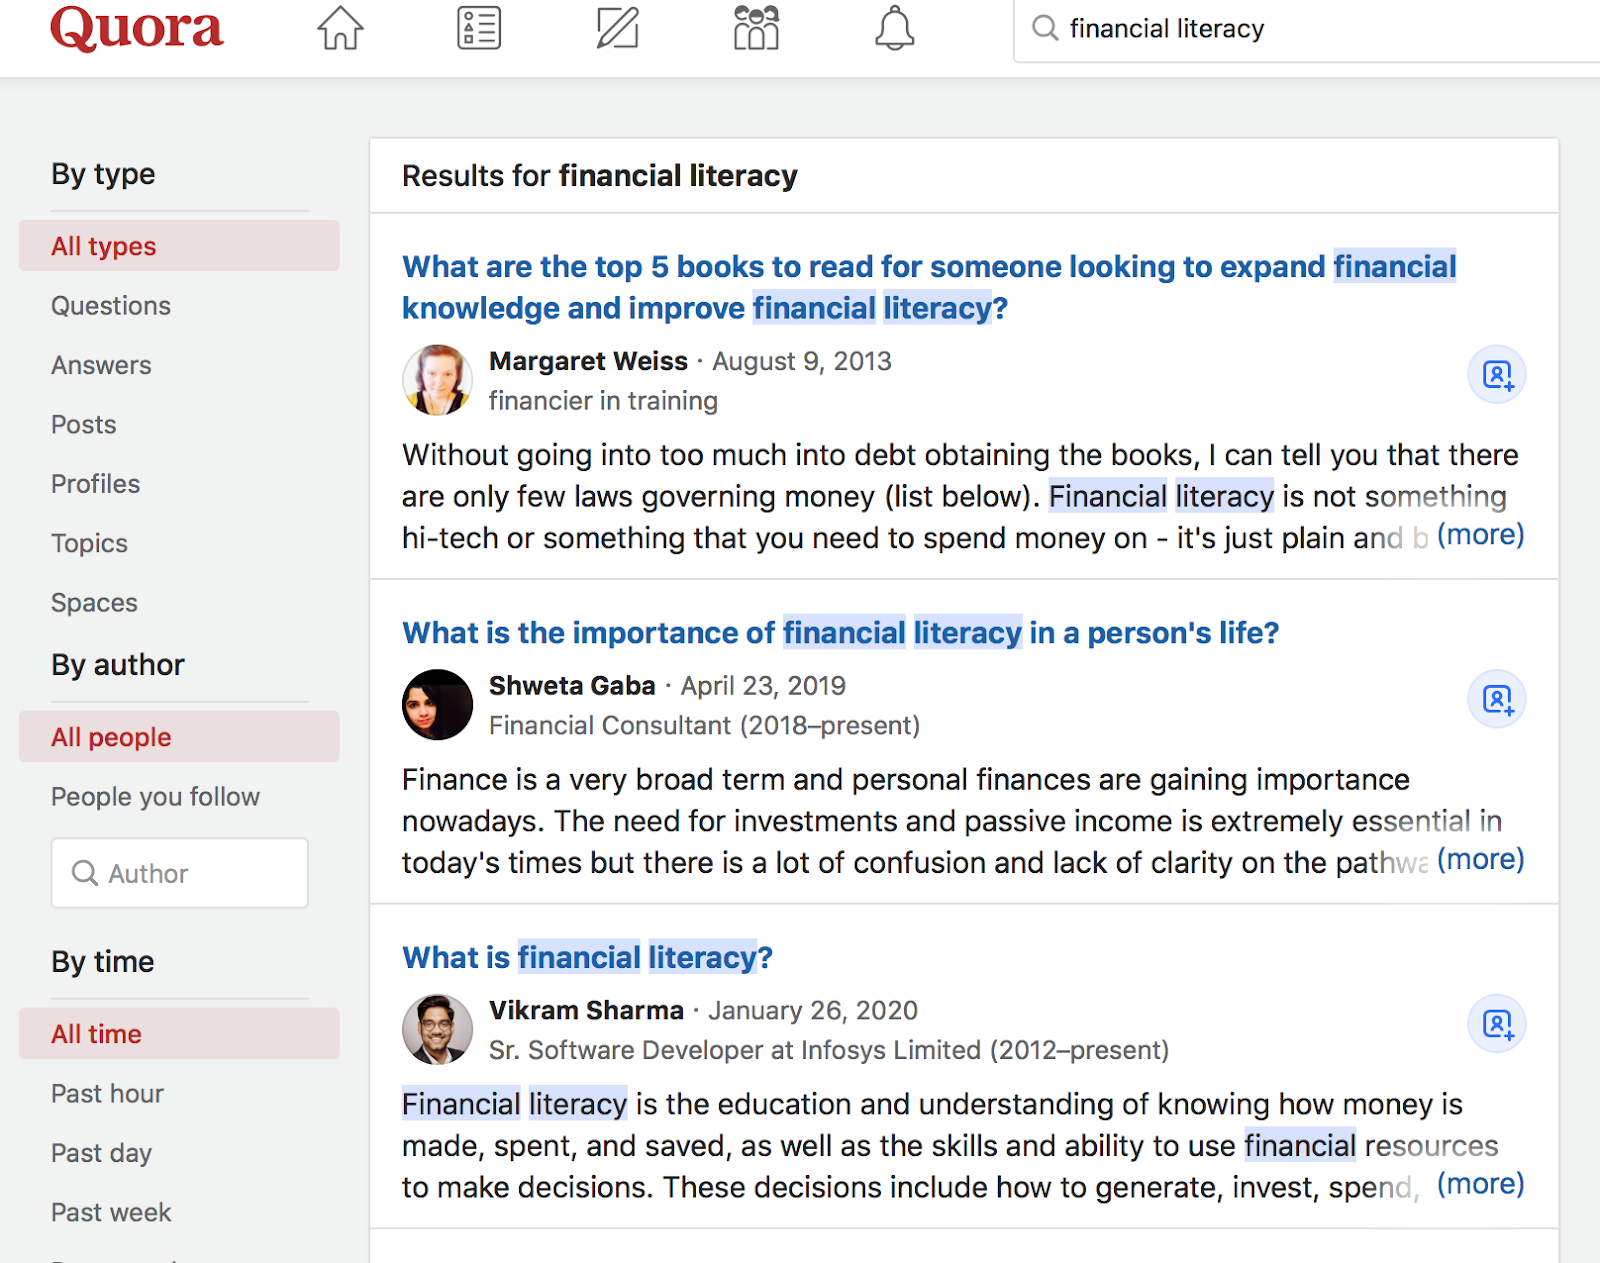 example of keyword research using forums like Quora